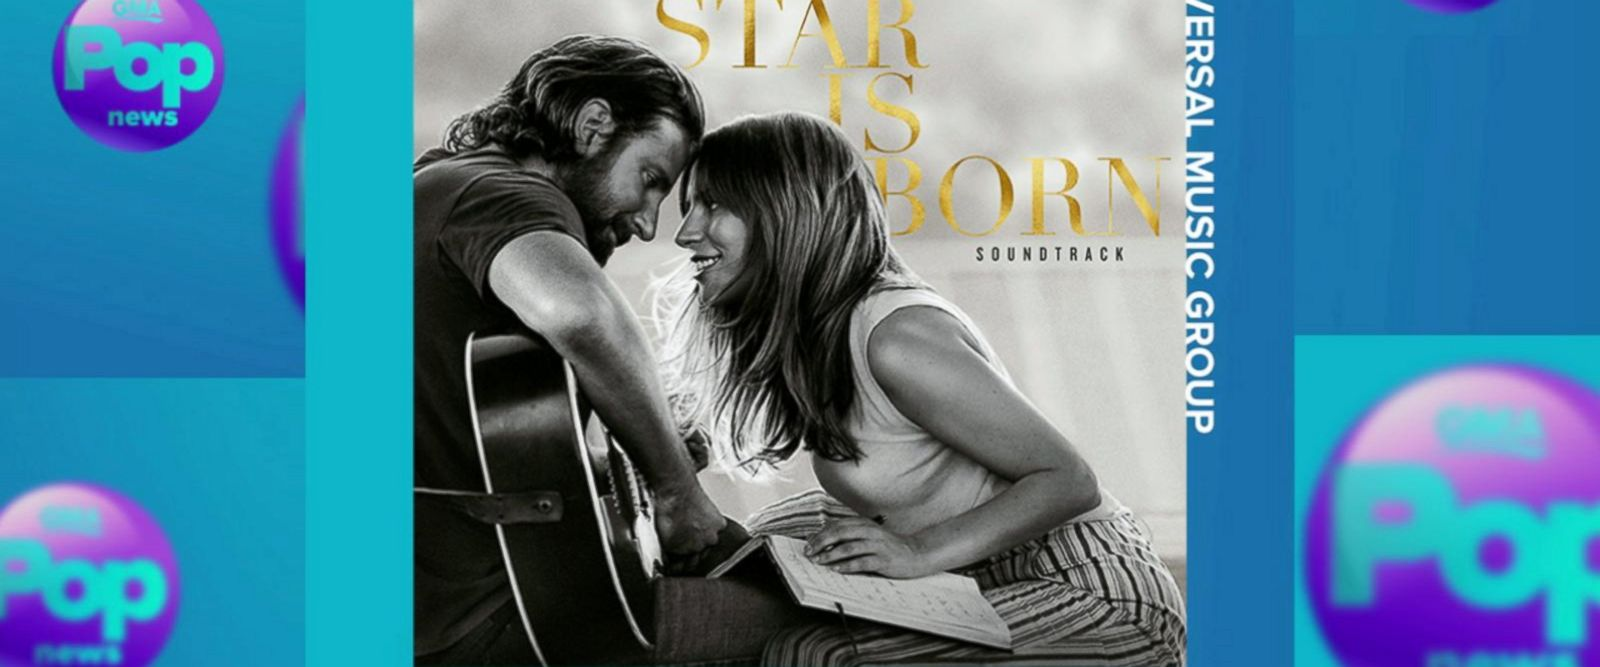 VIDEO: 'A Star is Born' soundtrack debuts at No. 1 on the Billboard 200 album list